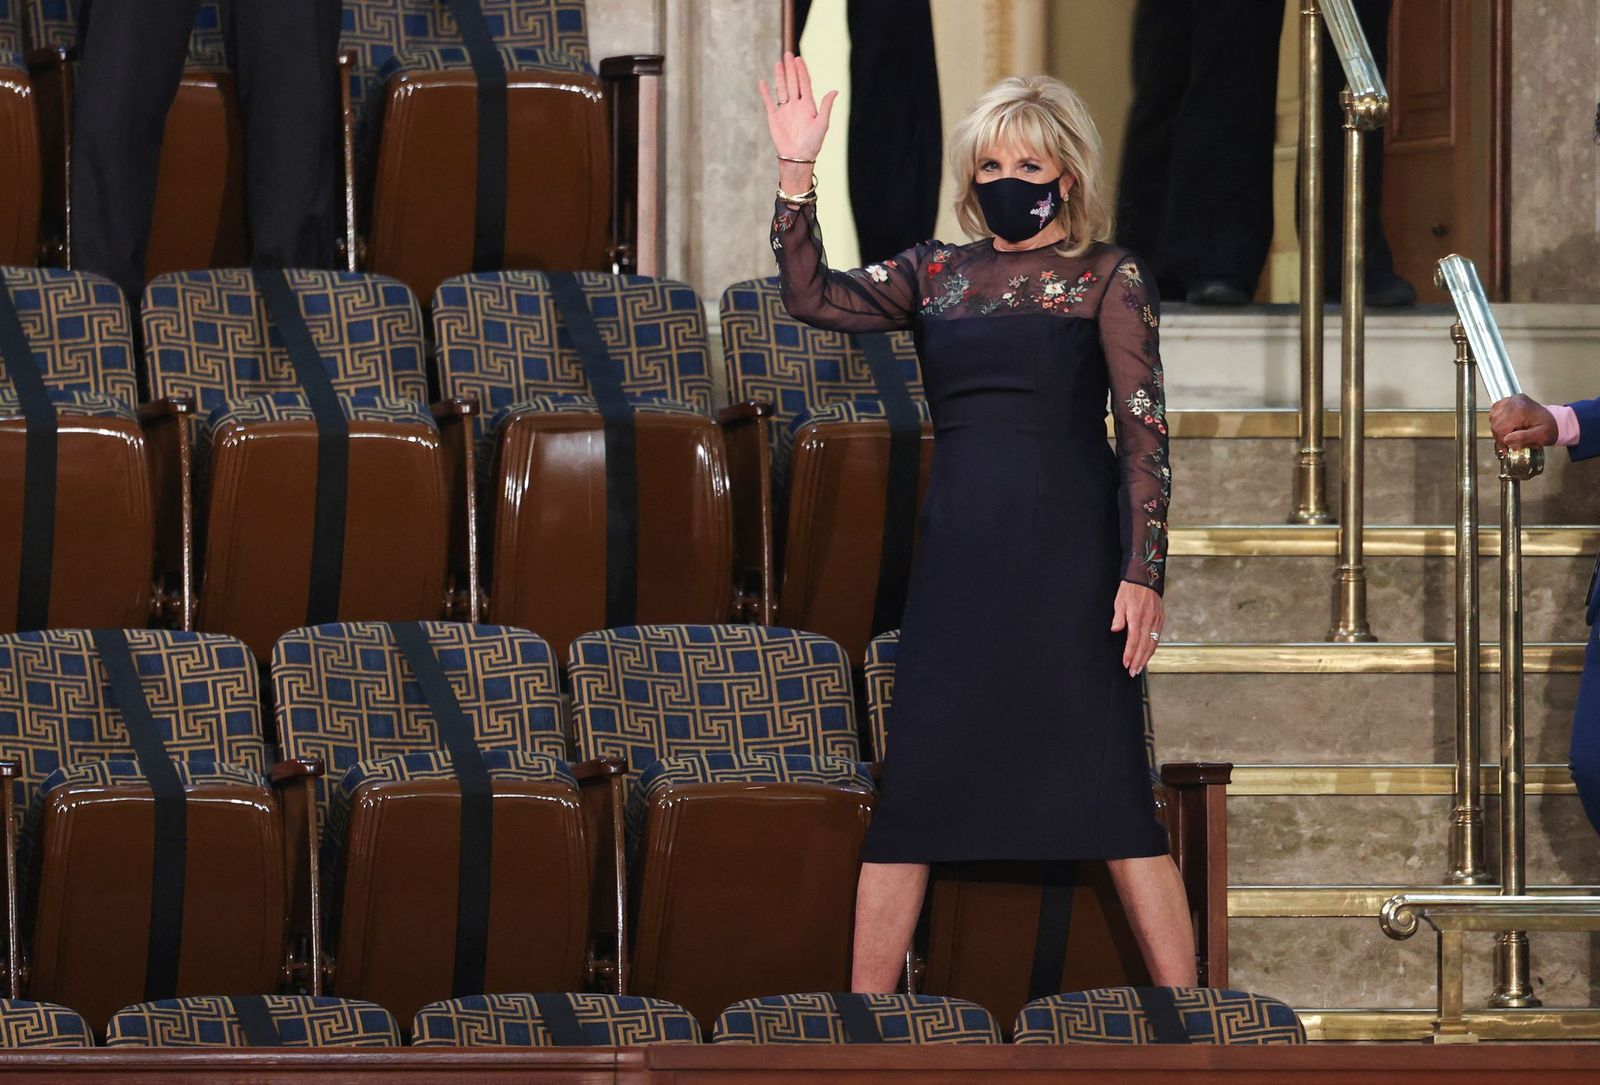 Jill Biden waves as she arrives forPresident Joe Biden's address to joint session of the Congress at the US Capitol in Washington, DC, on April 28, 2021. | Getty Images